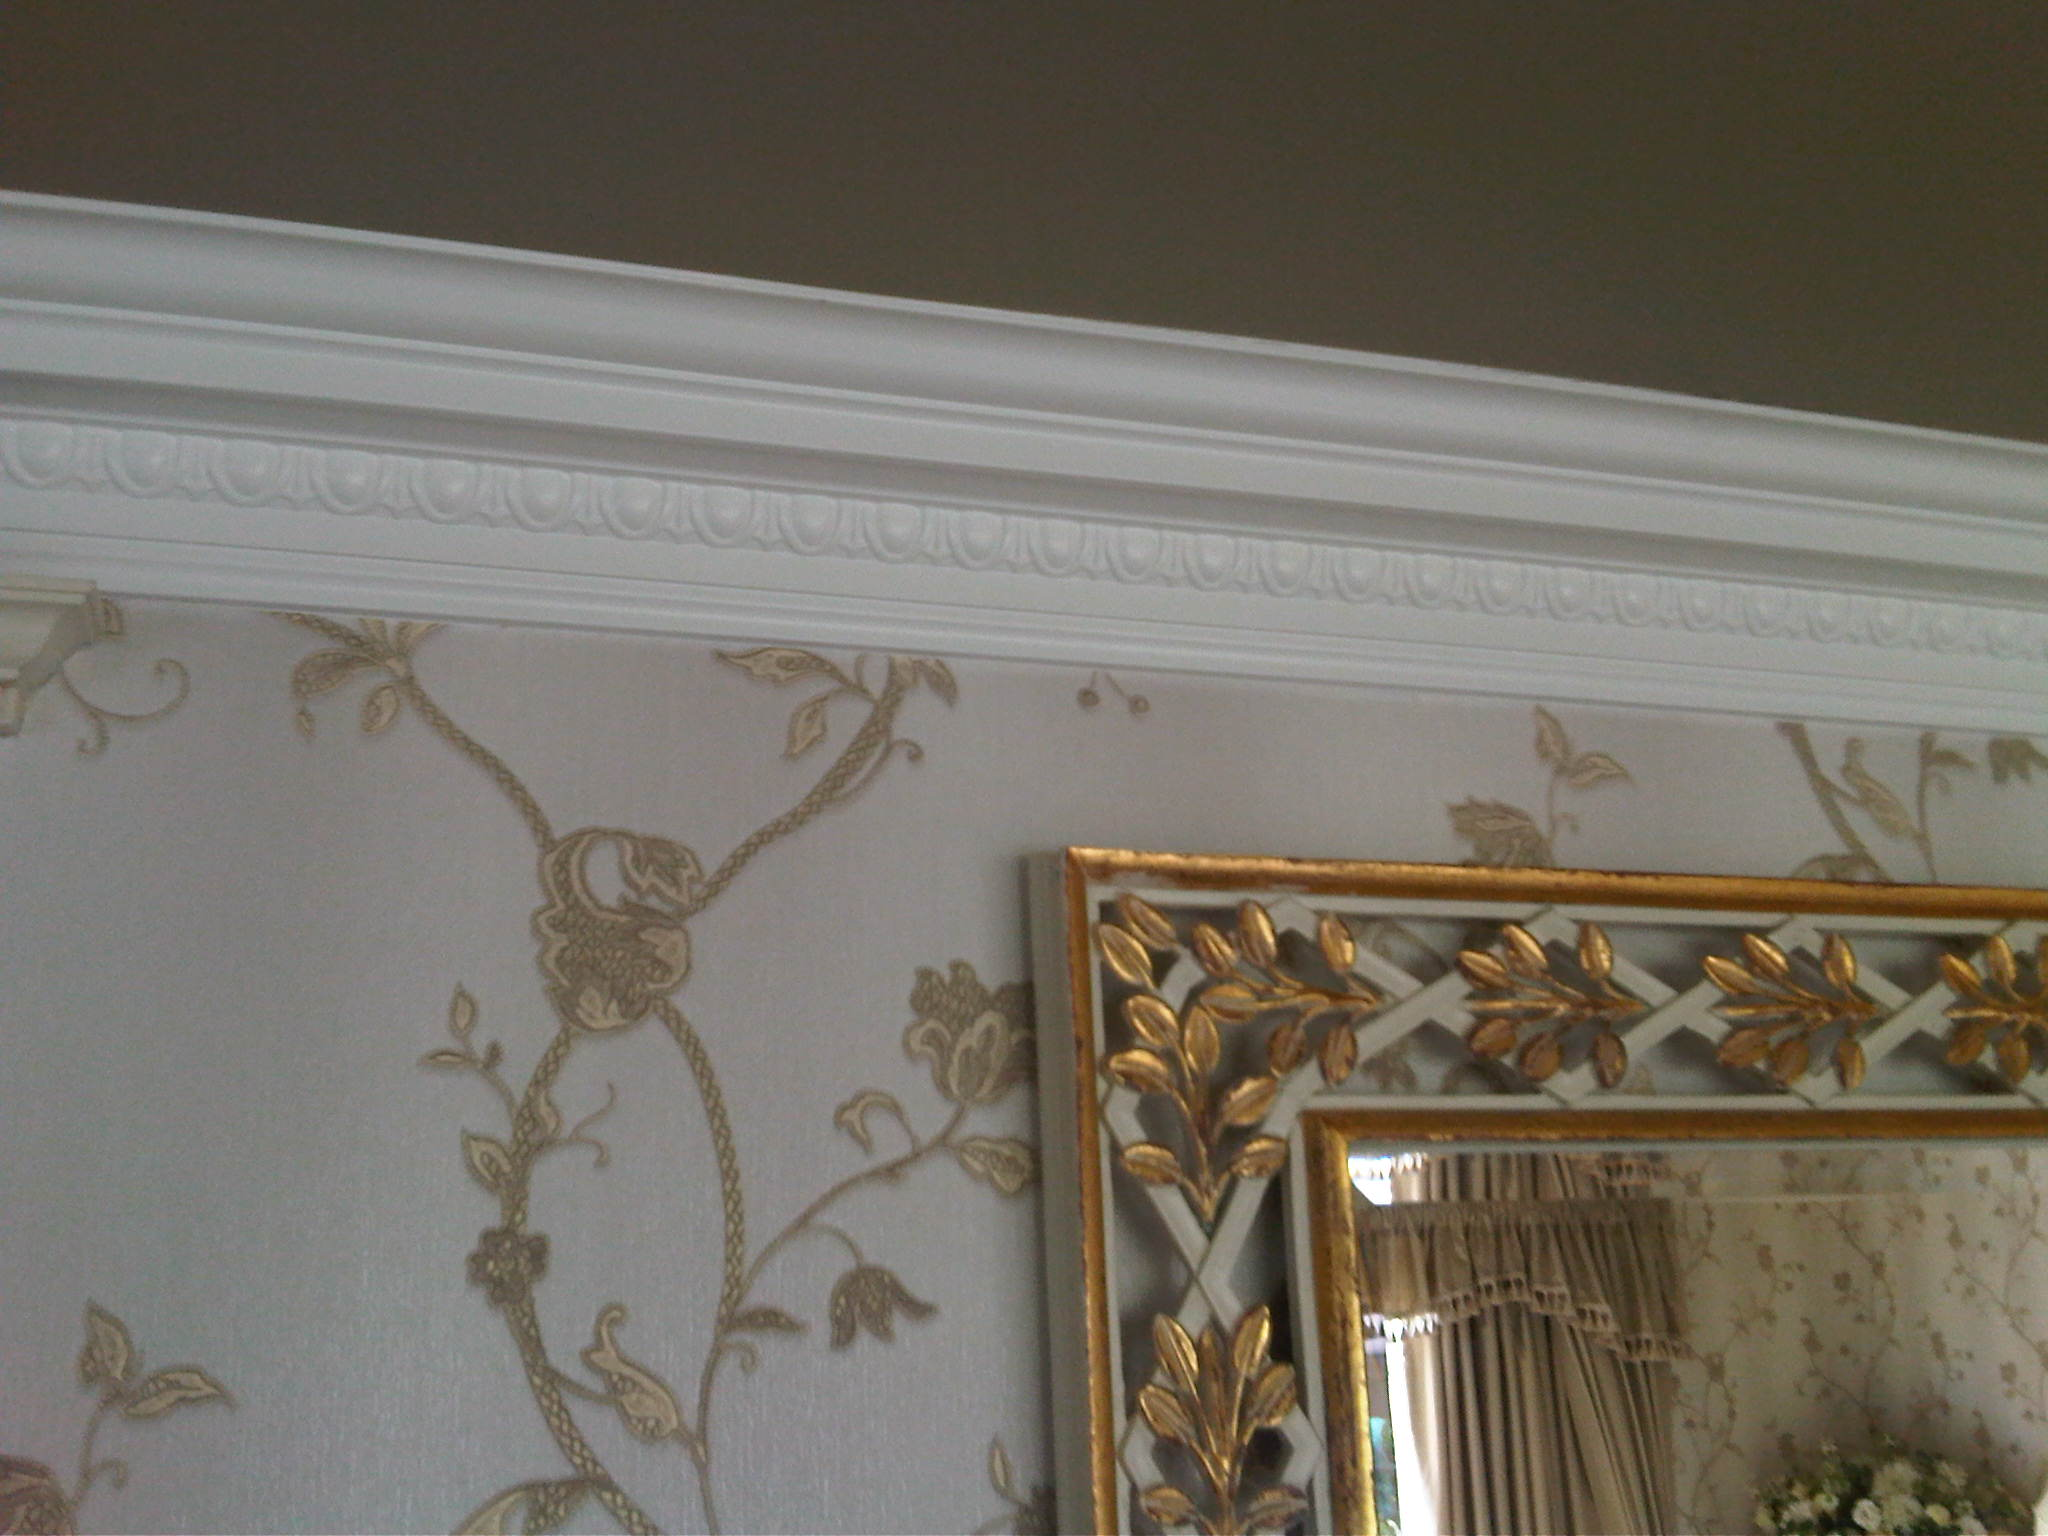 Ornate cornice and frames